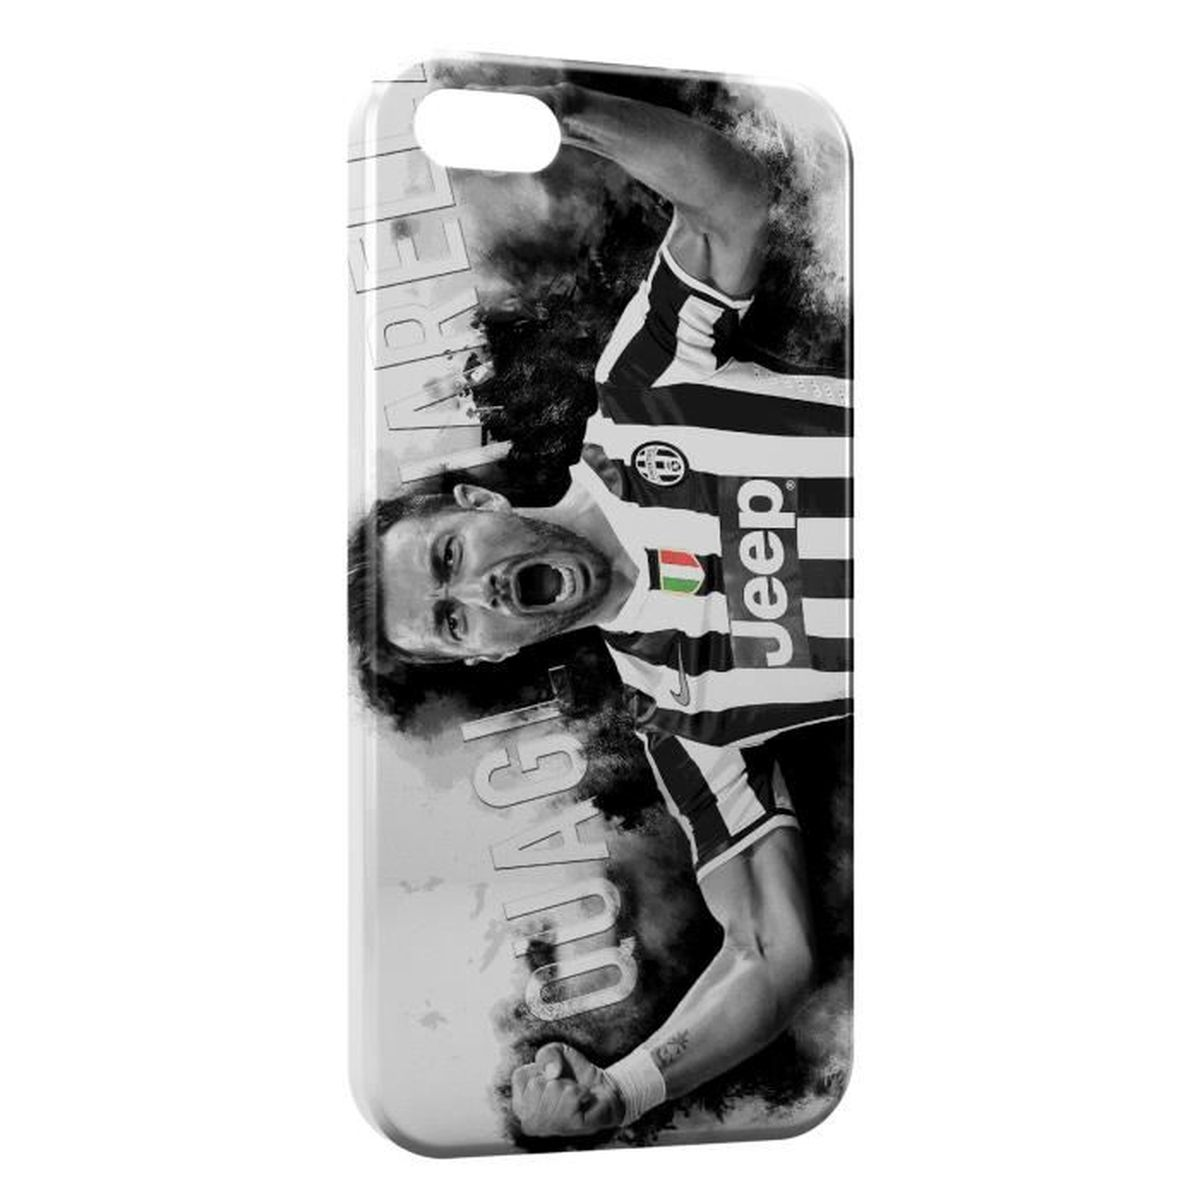 coque iphone 6 juve